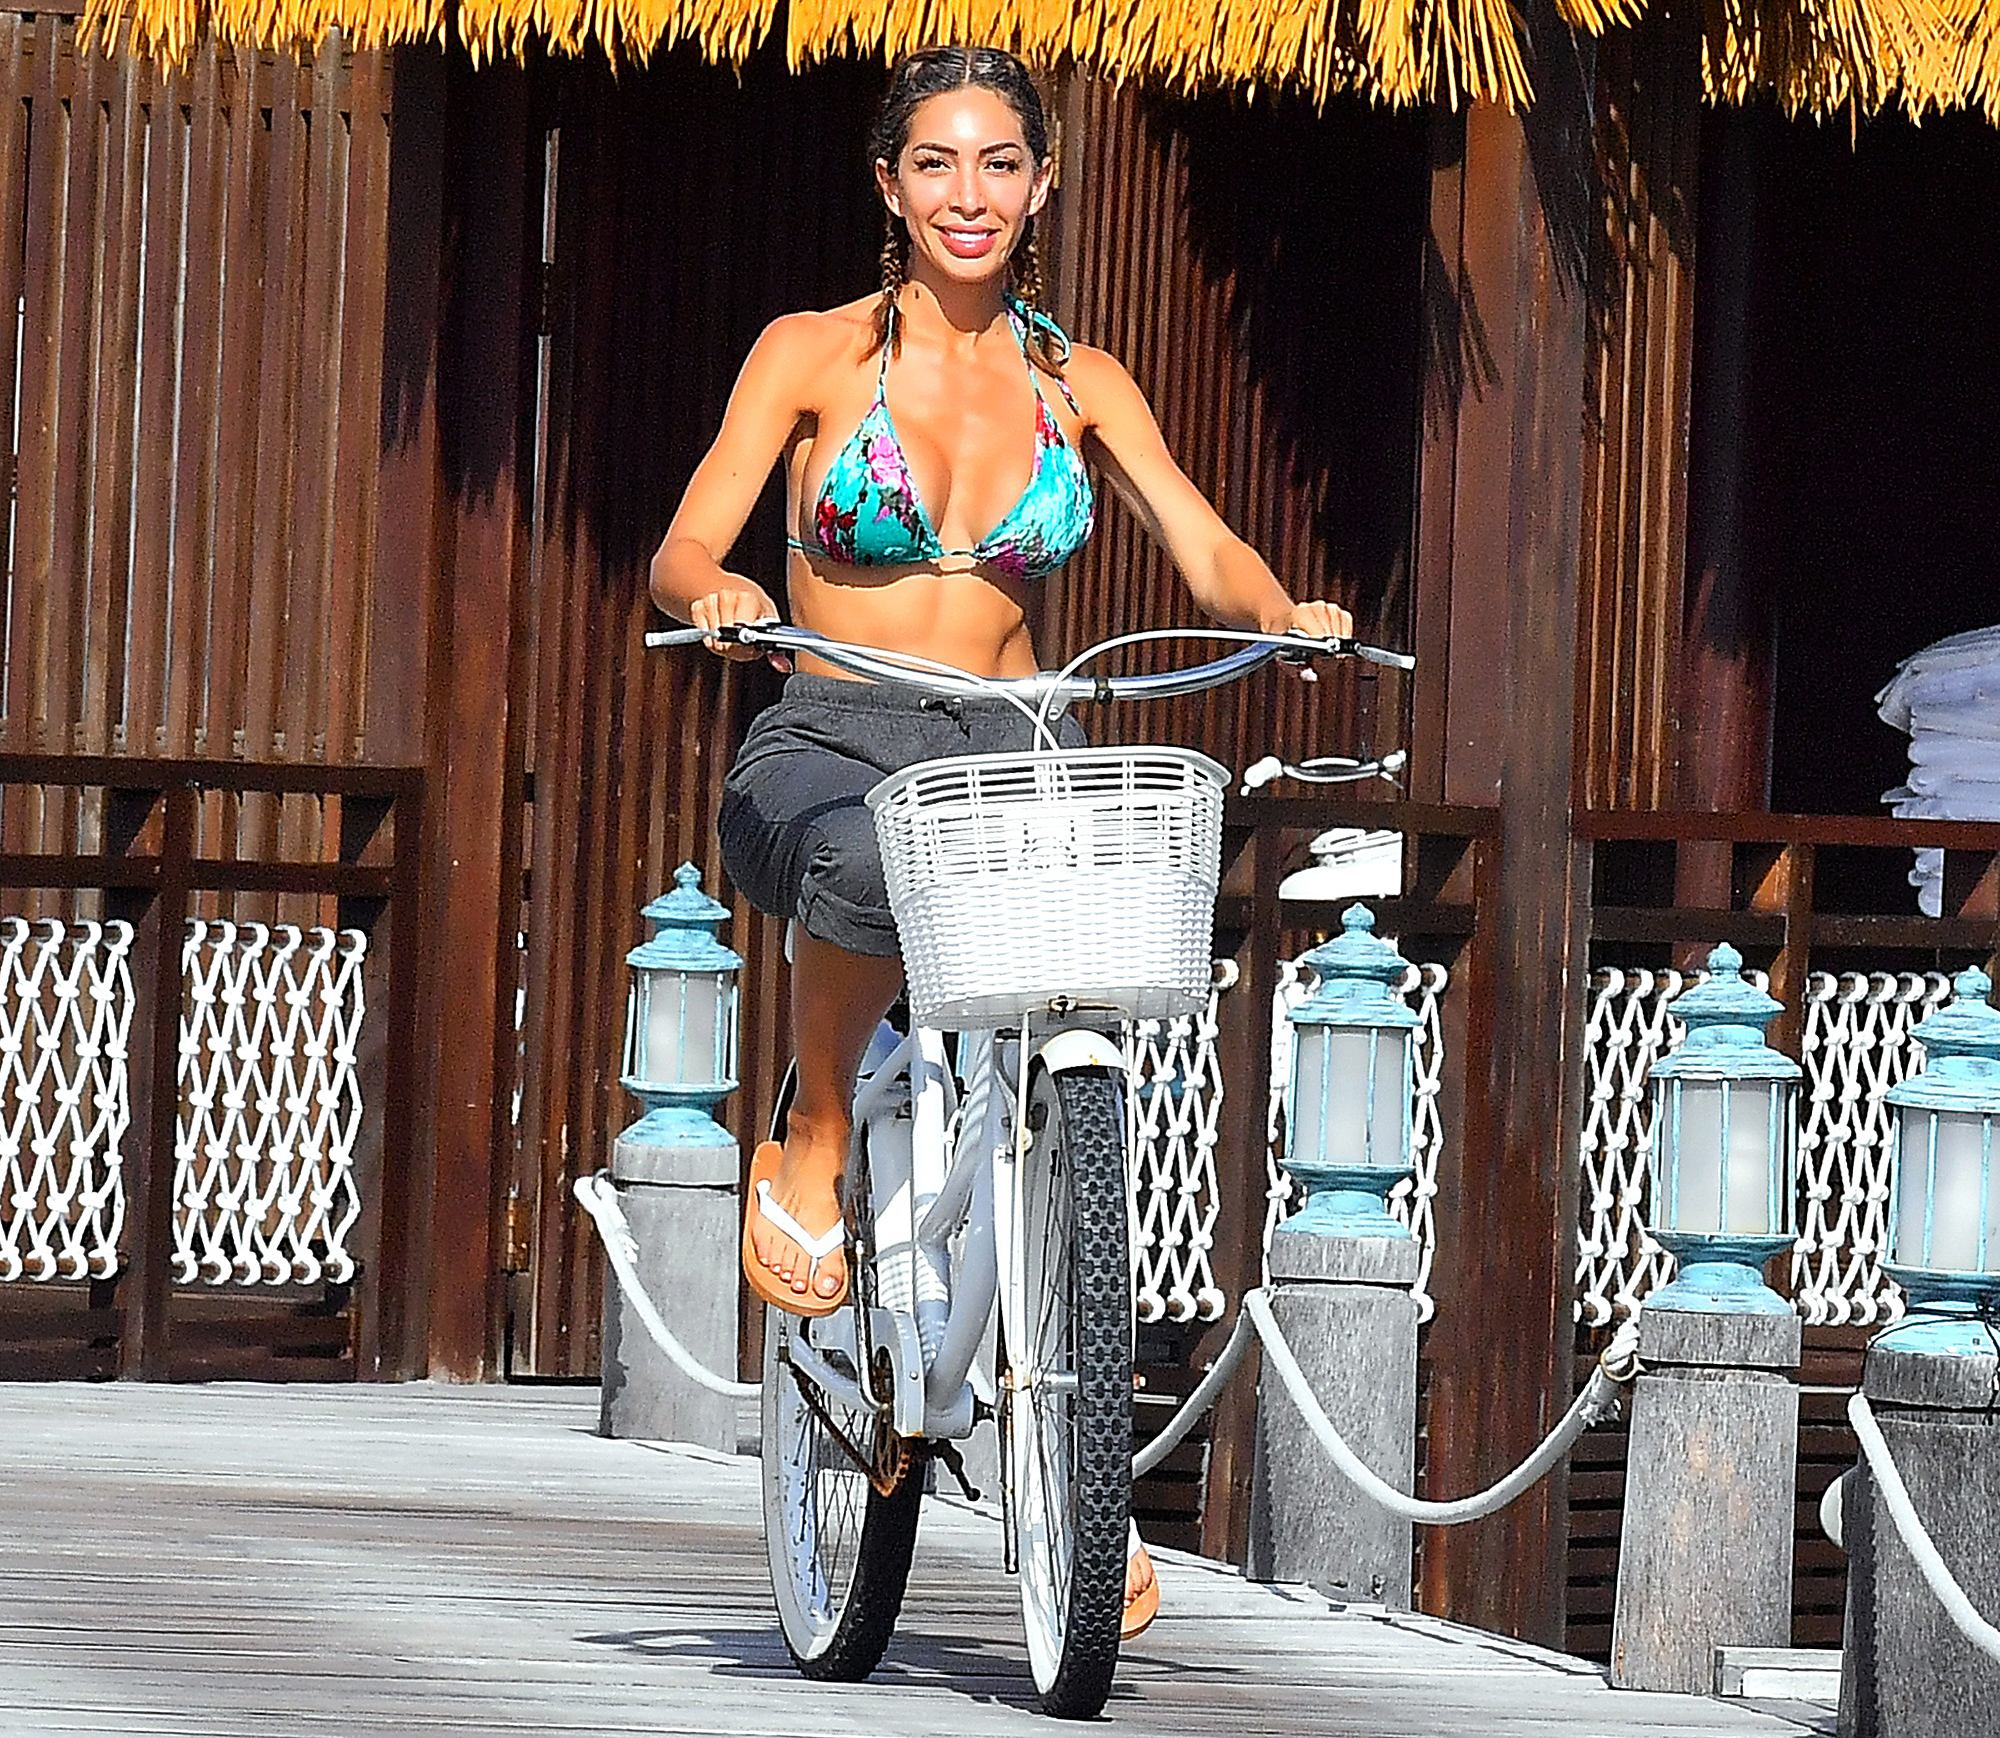 Farrah-Abraham-biking - In the Maldives on November 15, 2018, the former Teen Mom OG star — who has taken up boxing as her main fitness activity — pedaled near the sea in a bikini.